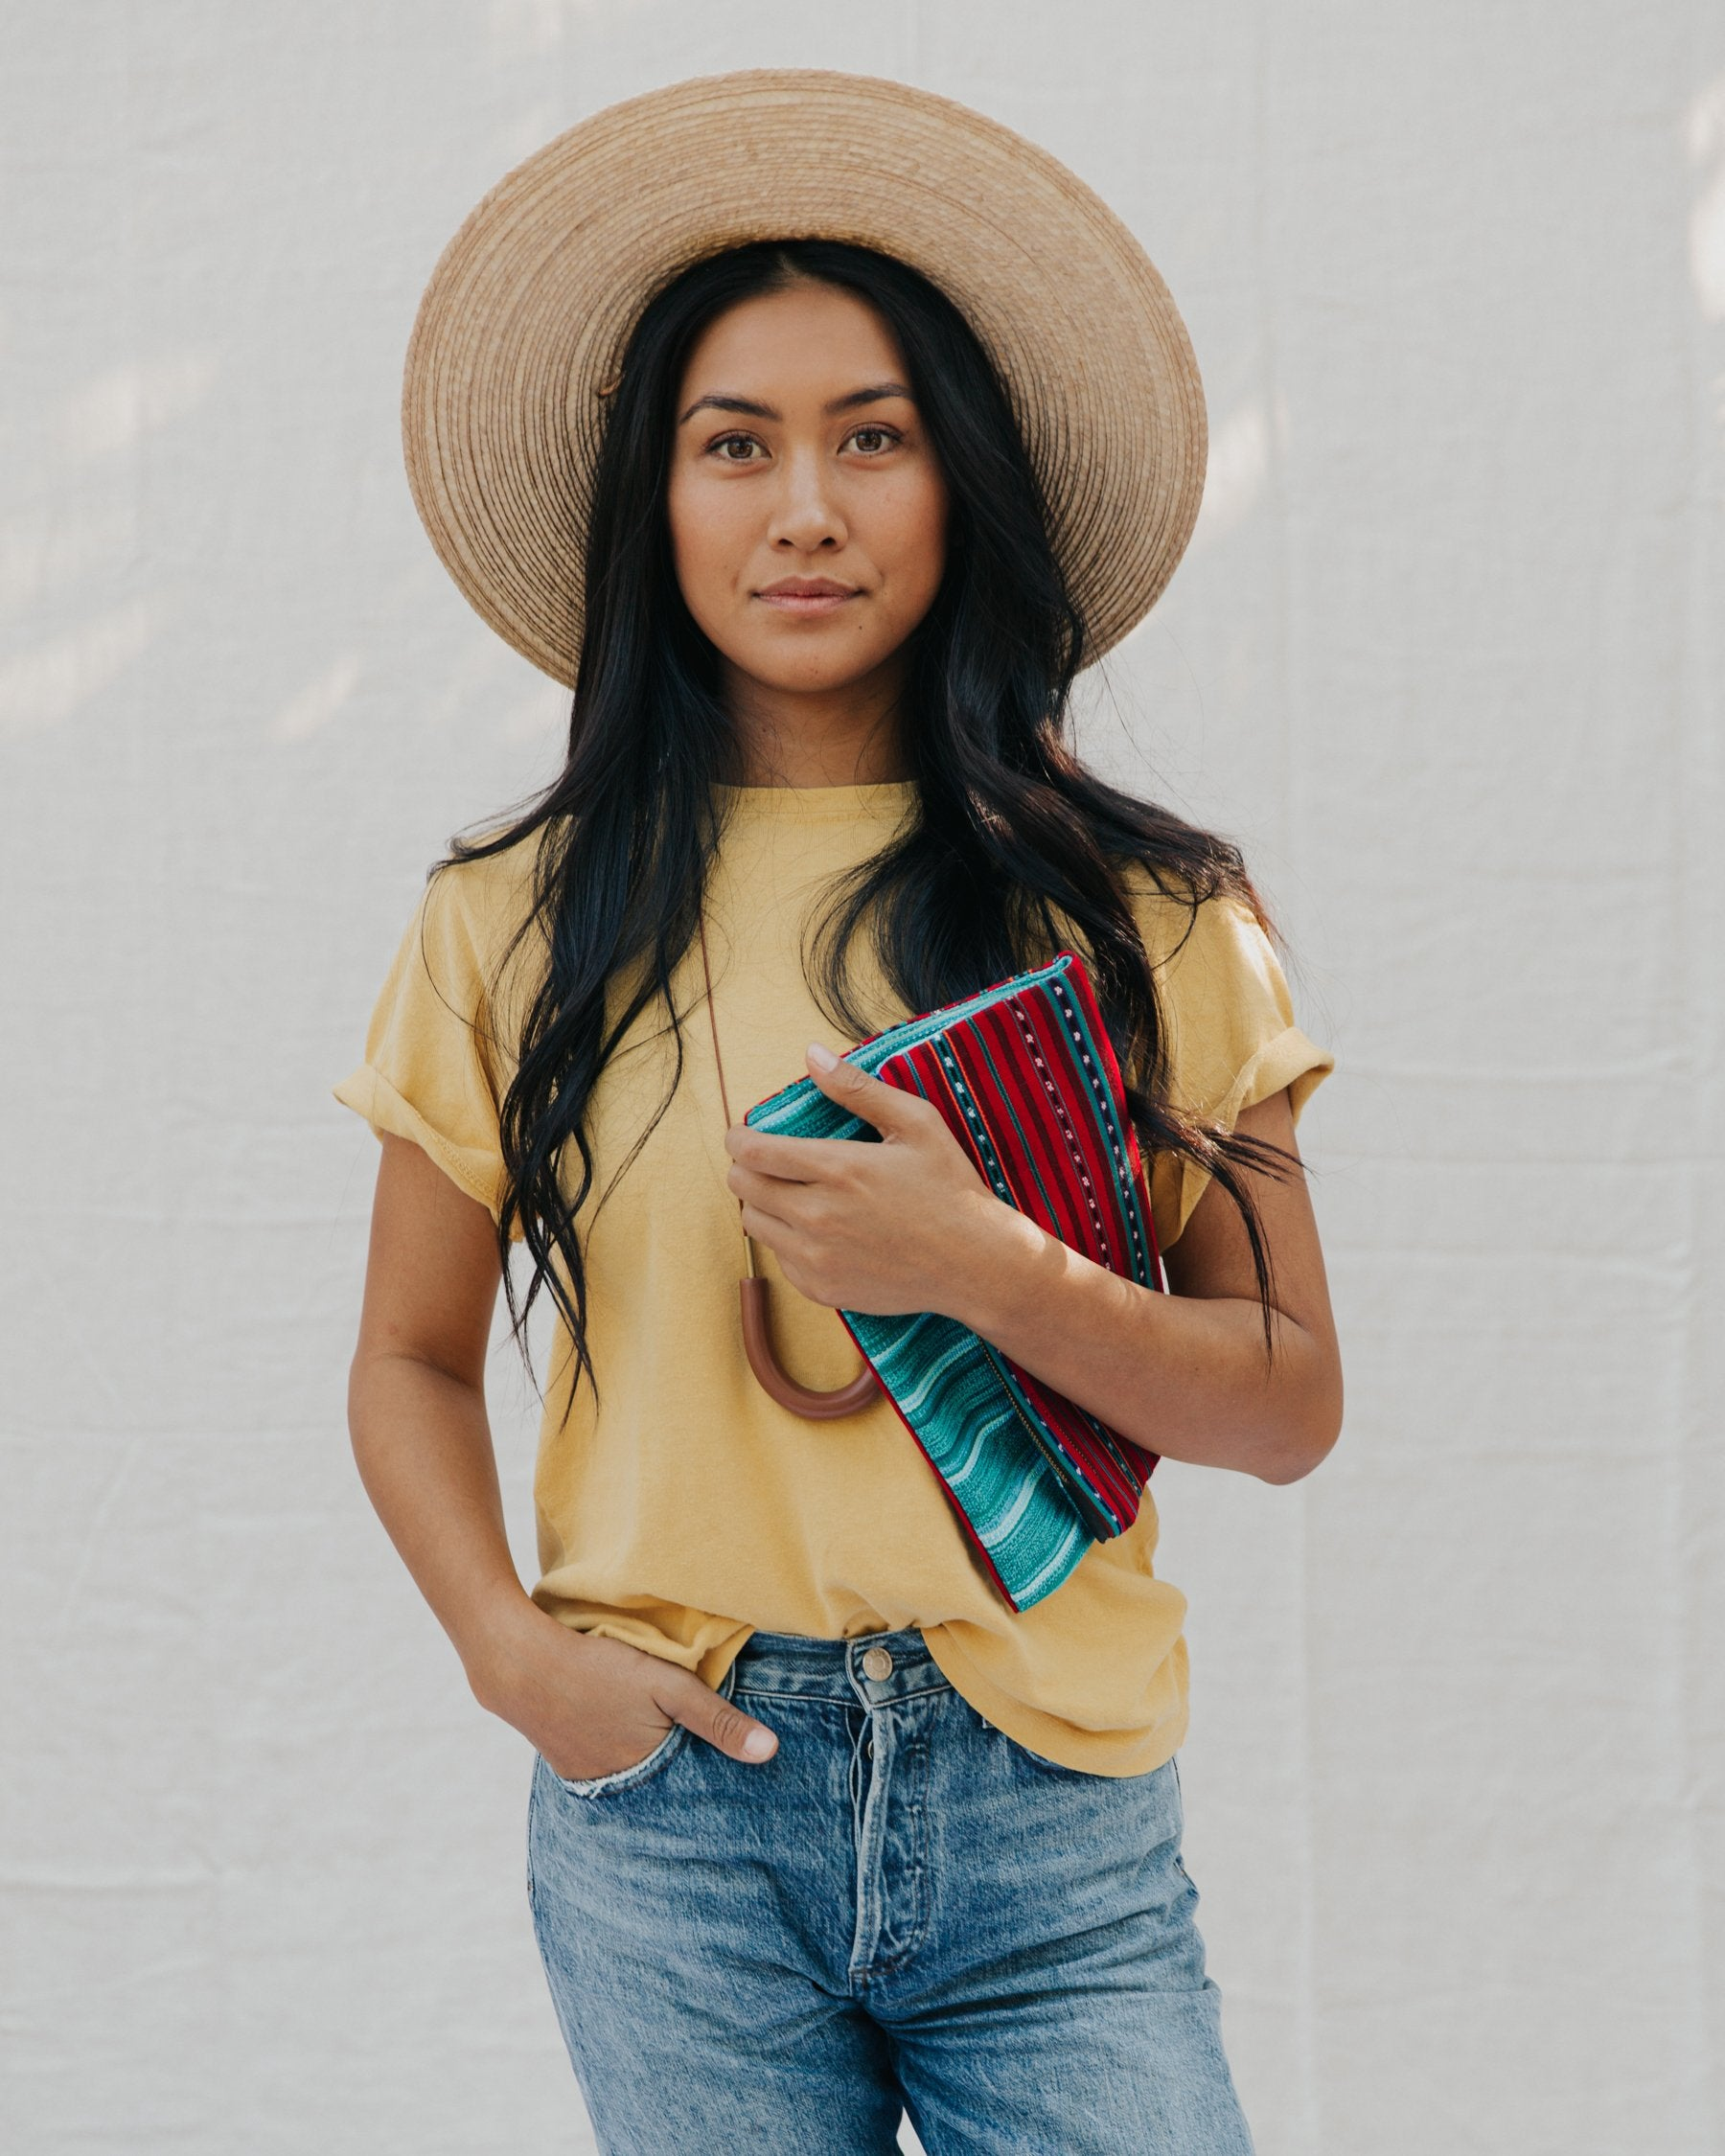 Handmade foldover/reversible clutch featuring fair trade textiles from Mayan artisan cooperatives in Guatemala, 100% organic cotton zippers, sustainably-harvested cork accents and tassels upcycled from textile scrap. Handmade by our resettled refugee artisan, Lashta, locally in San Diego.